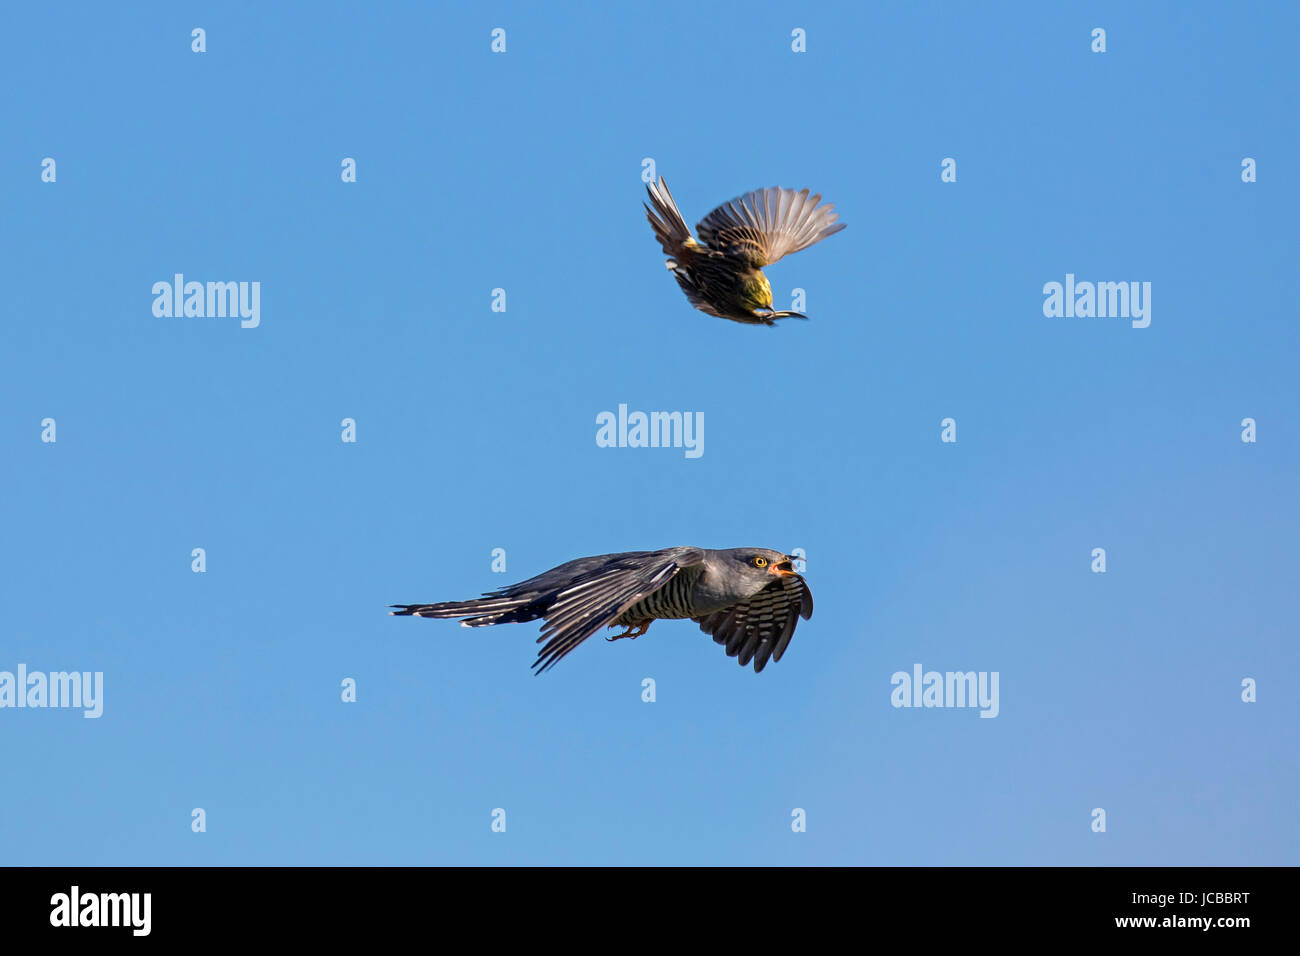 Common cuckoo (Cuculus canorus) mobbed by yellowhammer (Emberiza citrinella) in flight Stock Photo